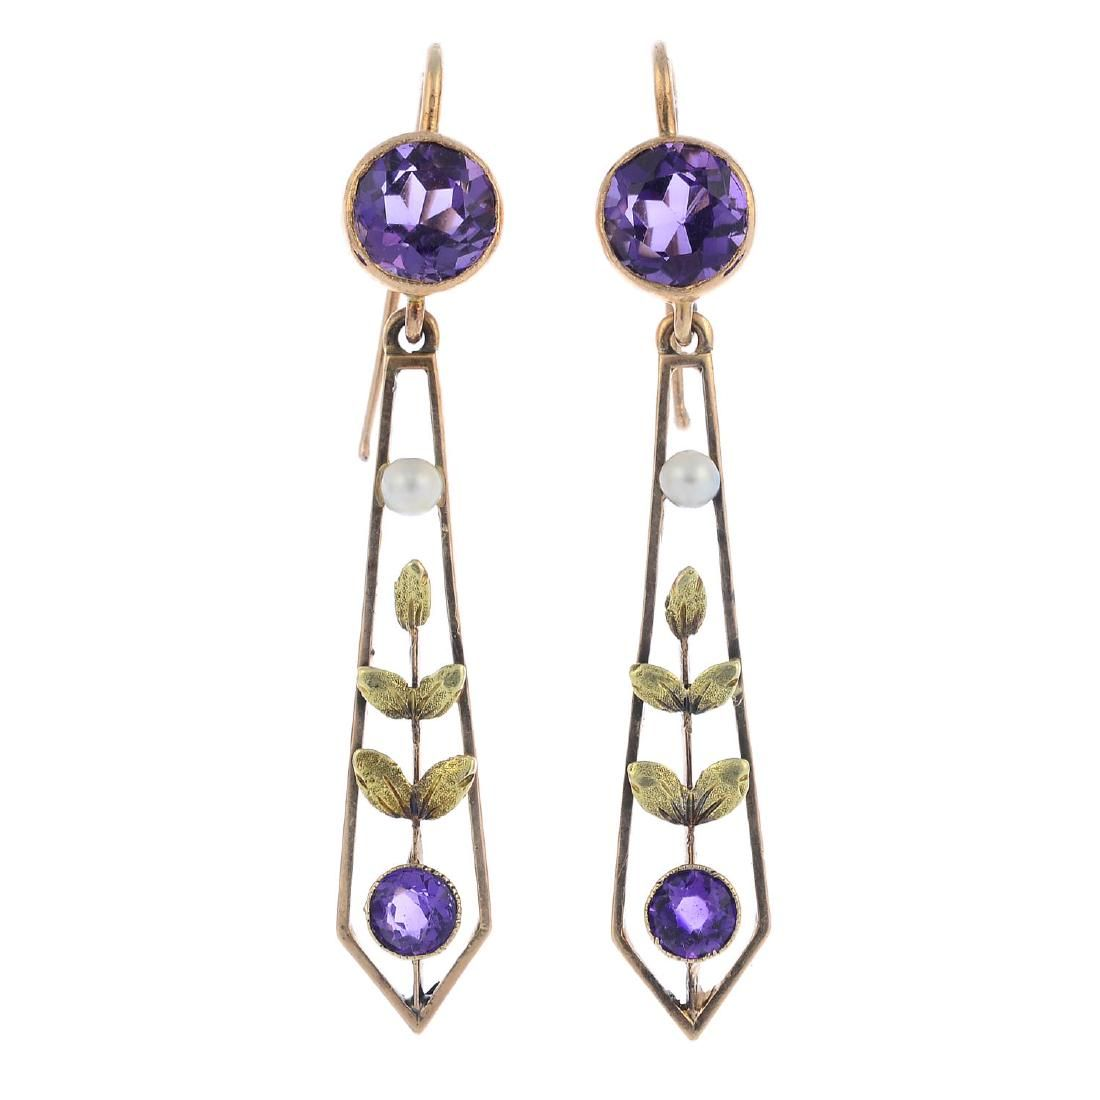 A pair of Edwardian 9ct gold amethyst and split pearl